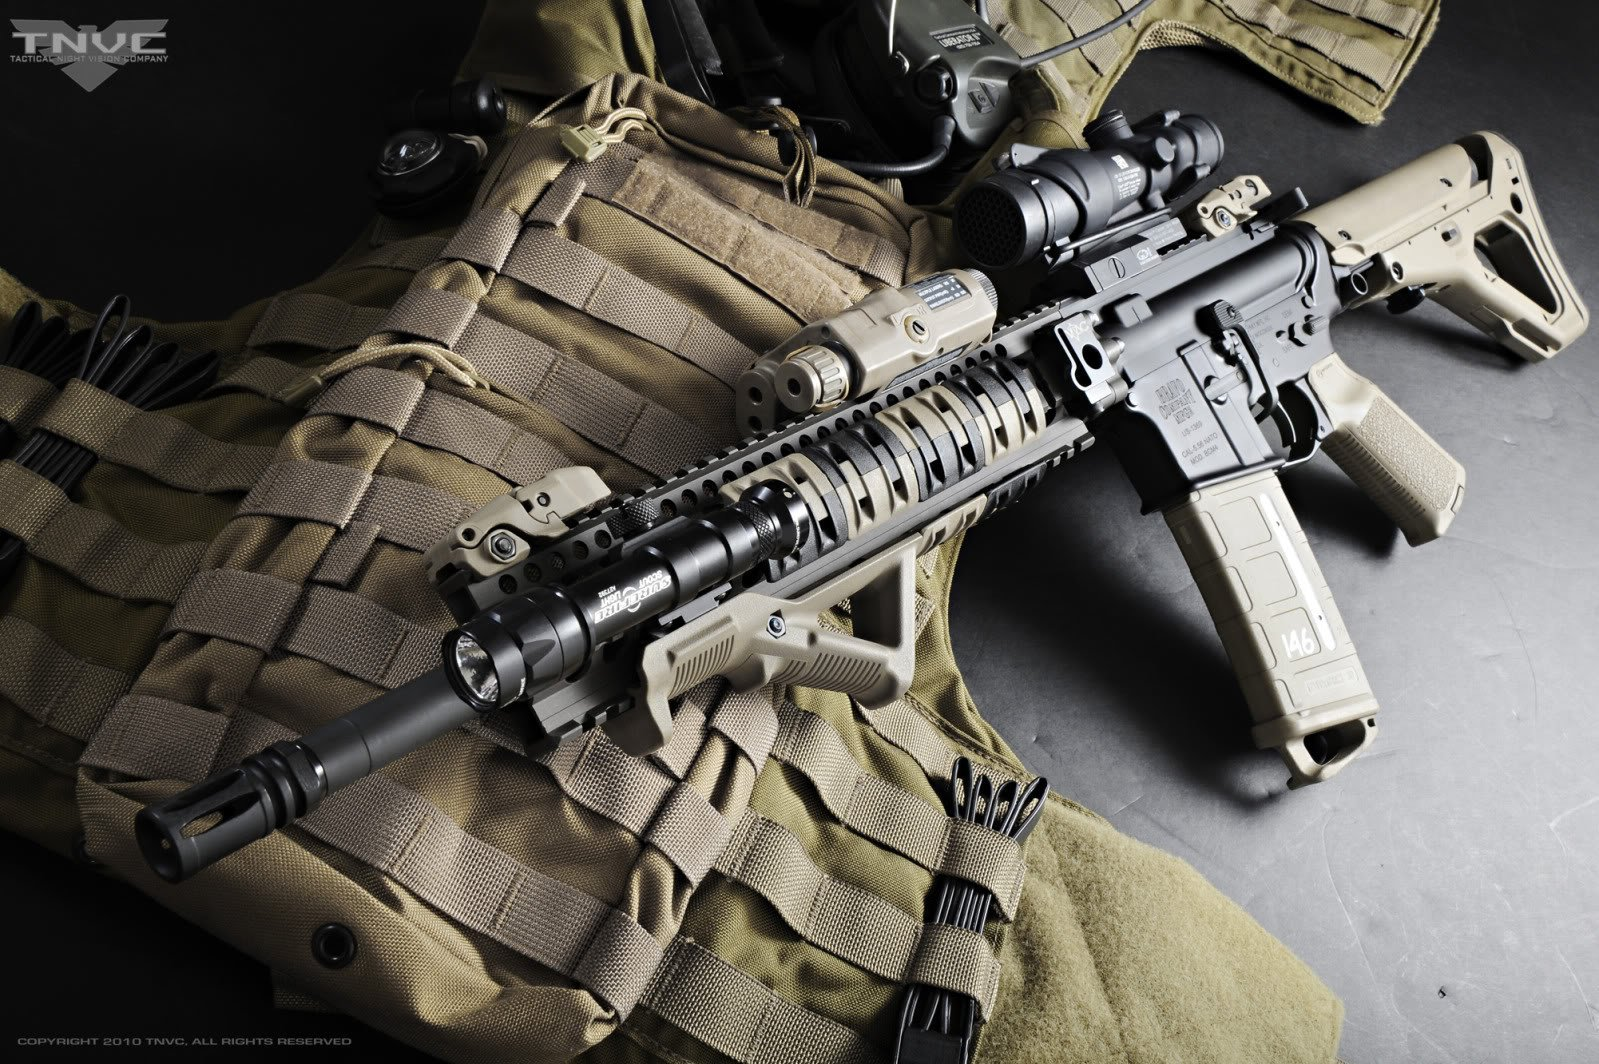 Weapons Assault Rifle Gun Wallpaper 1599x1064